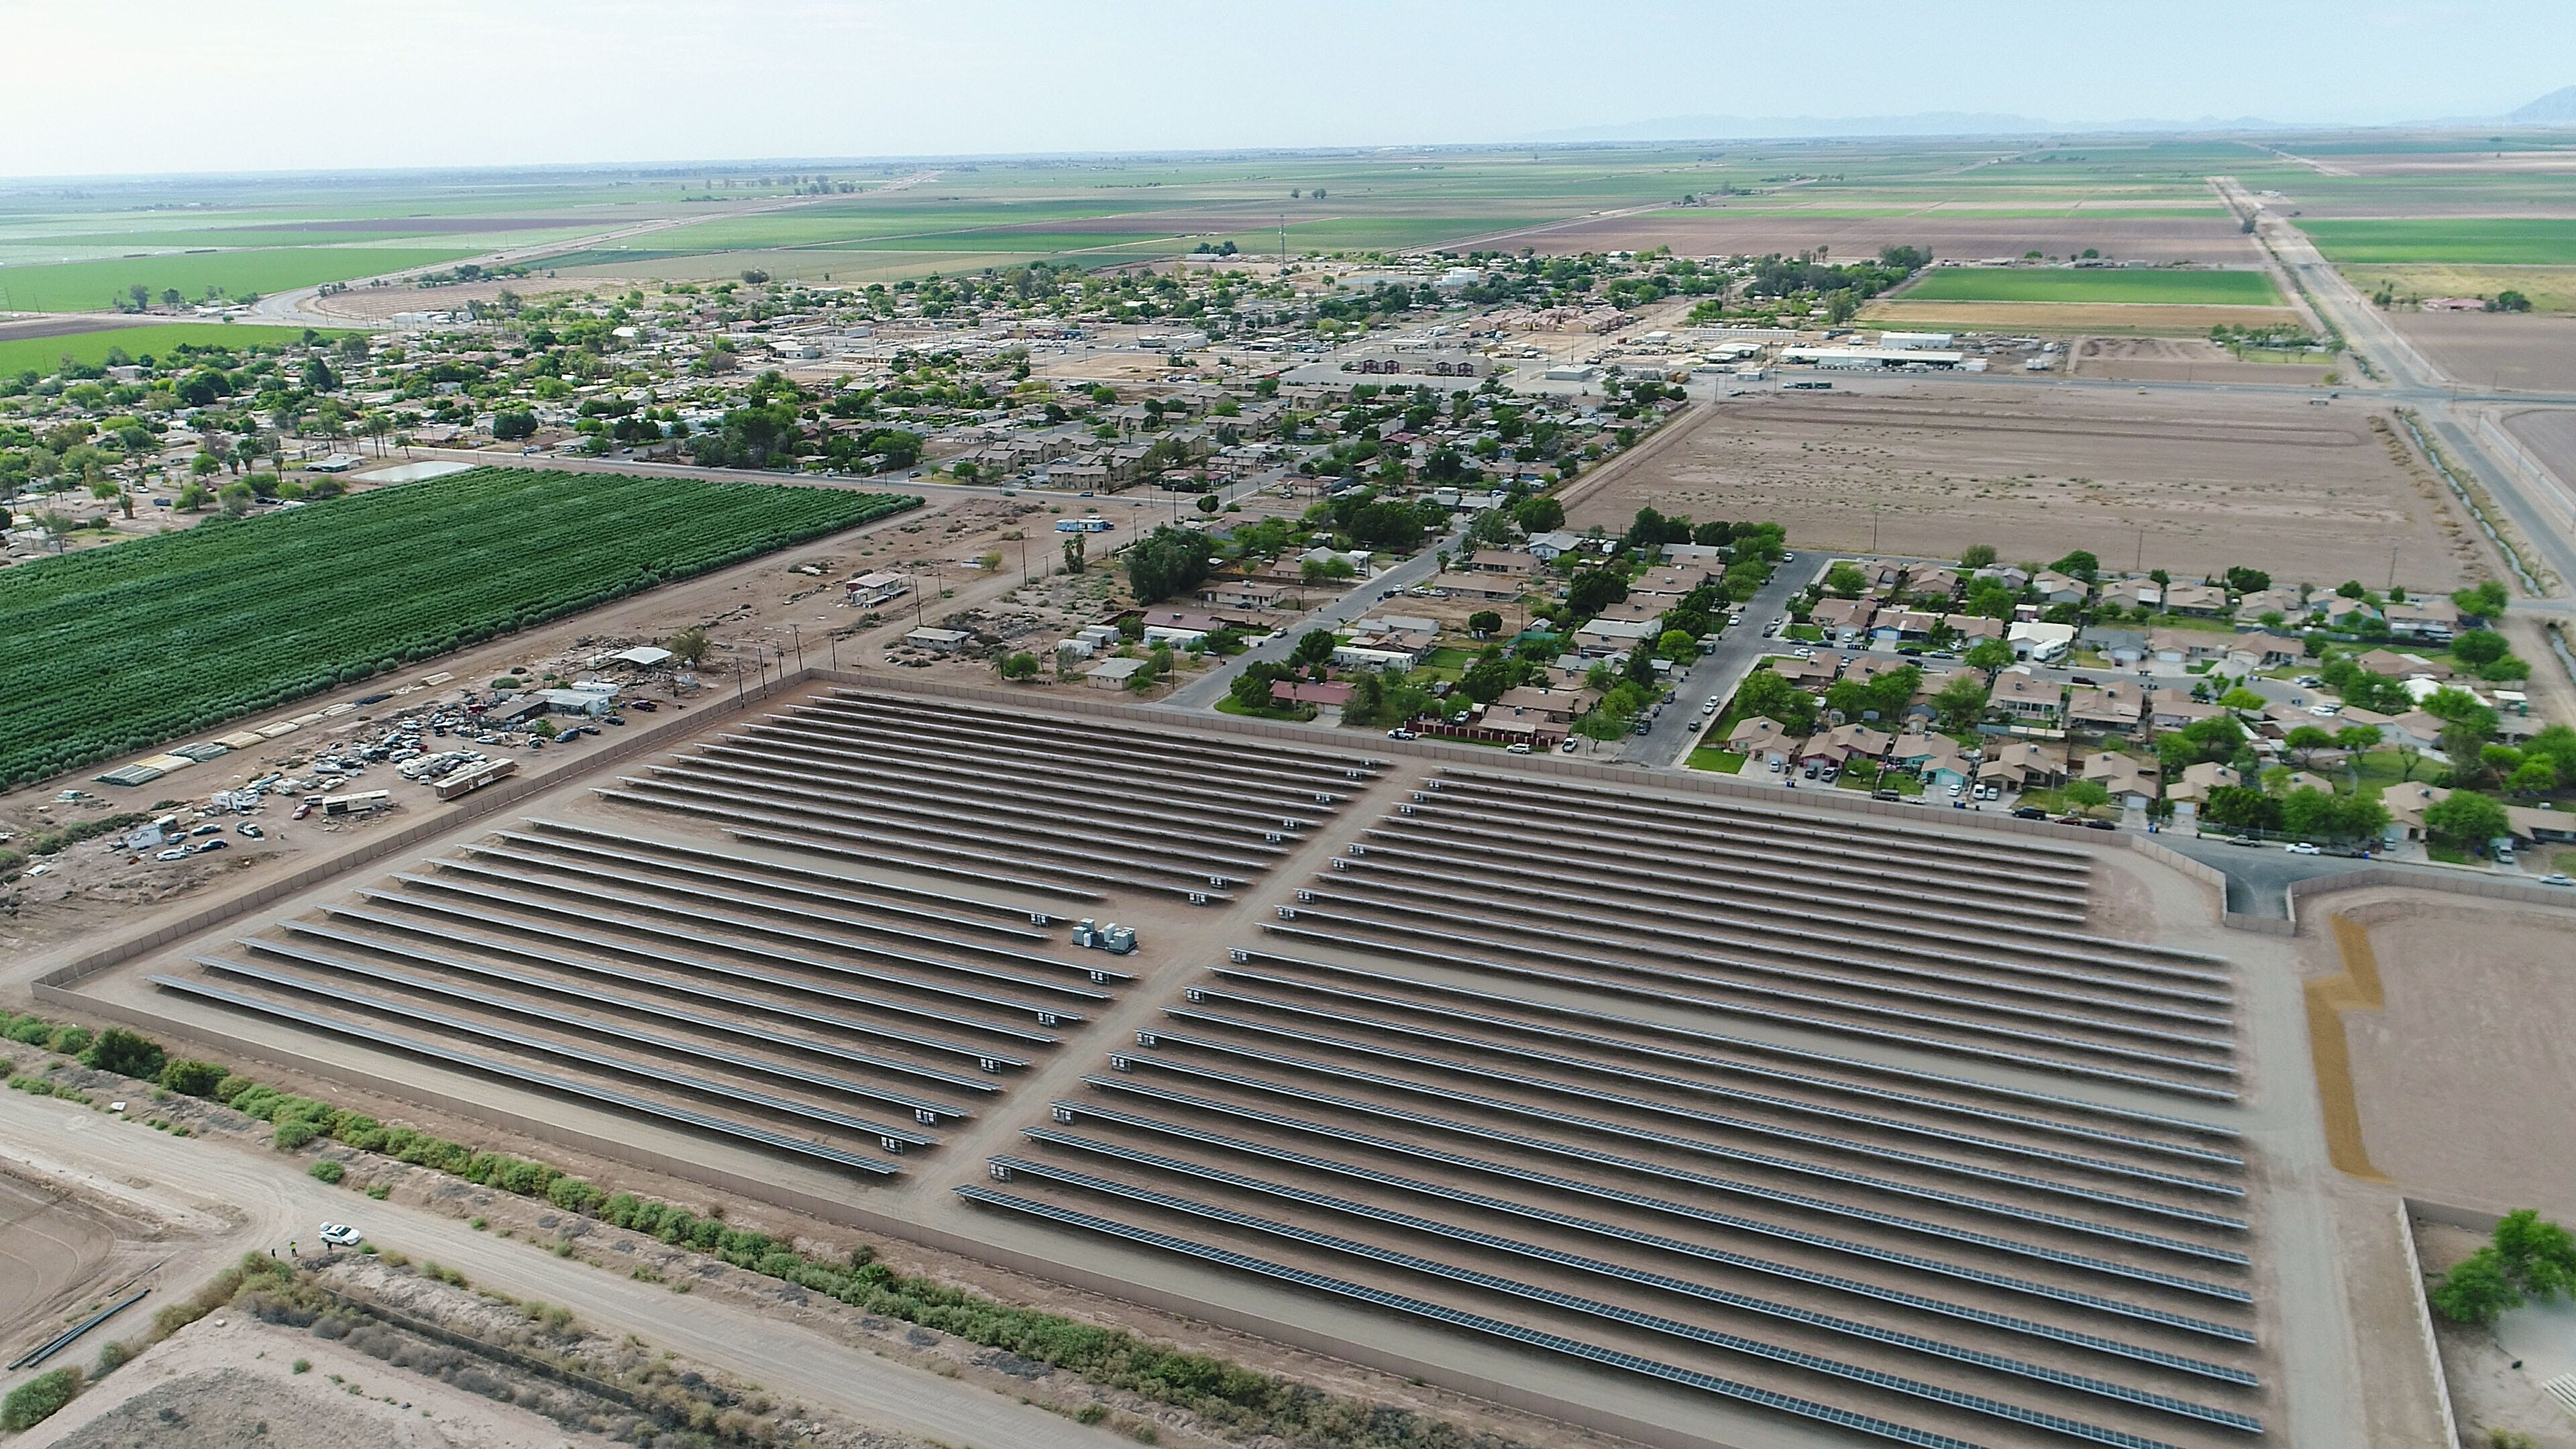 The Valencia 1 solar project, as seen from a drone, borders the city of Westmorland, California. Valencia 1 was developed by ZGlobal.